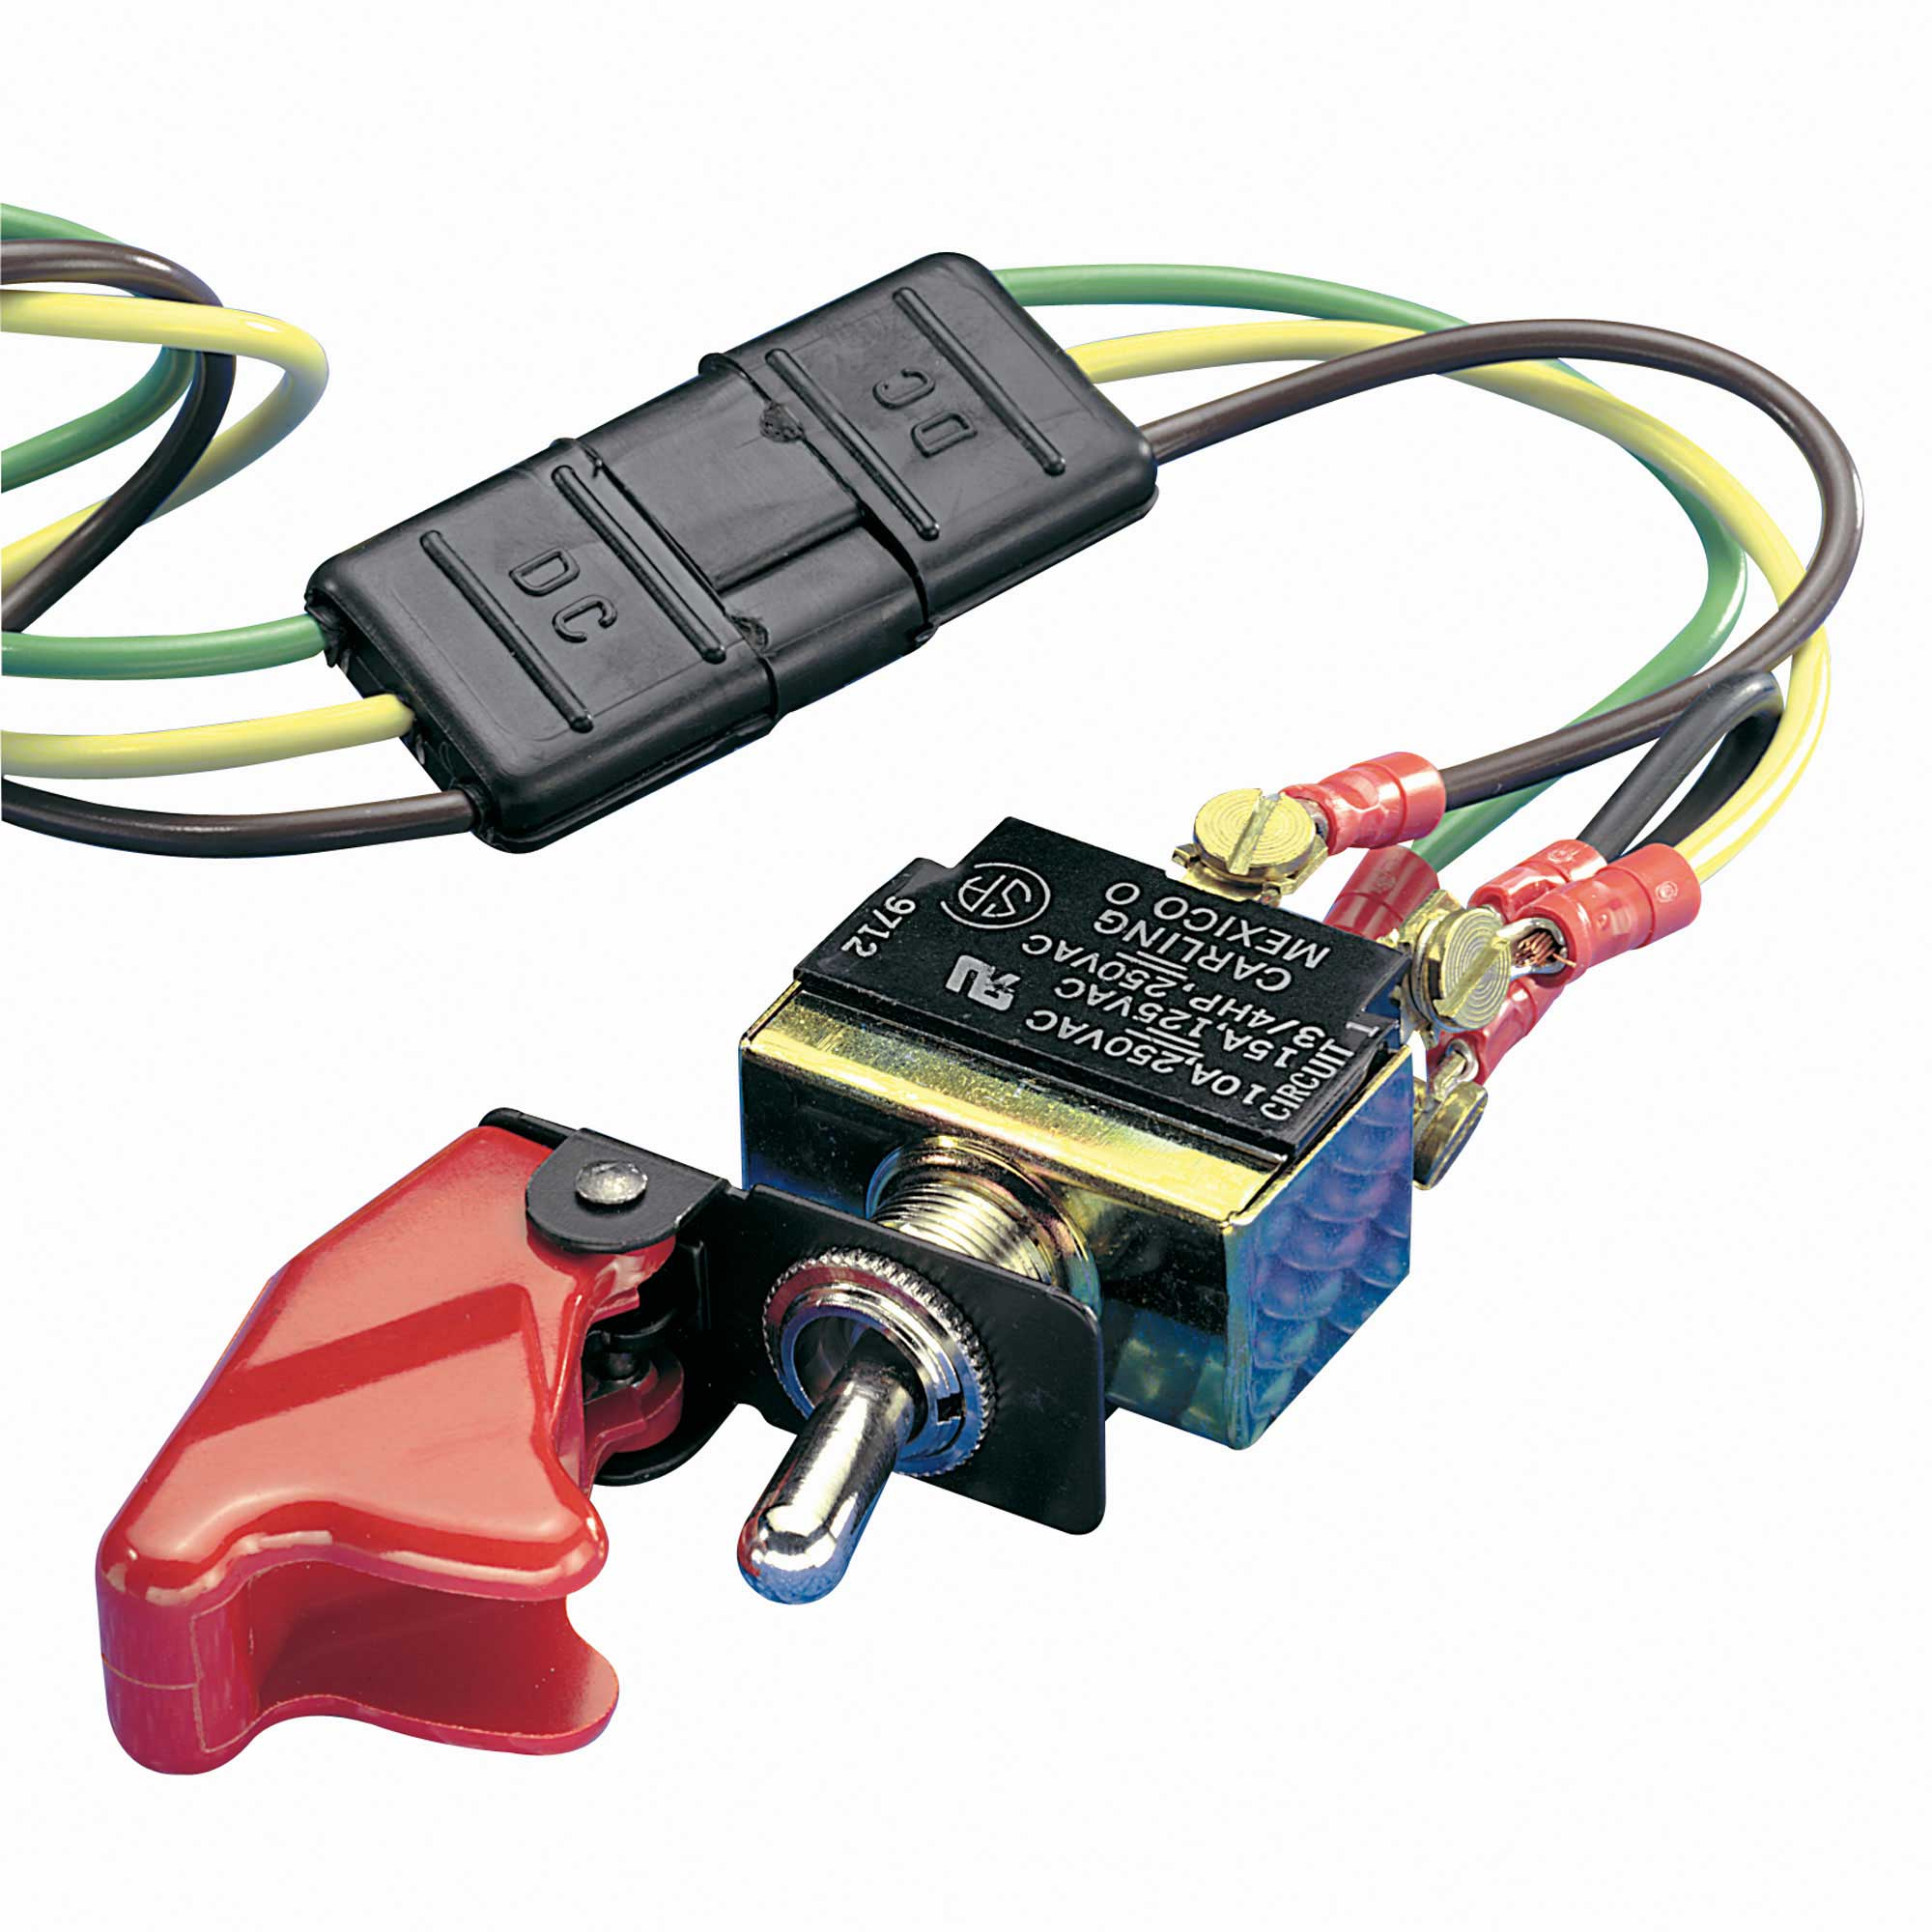 details about longacre combined ignition & starter switch - race /rally/motorsport